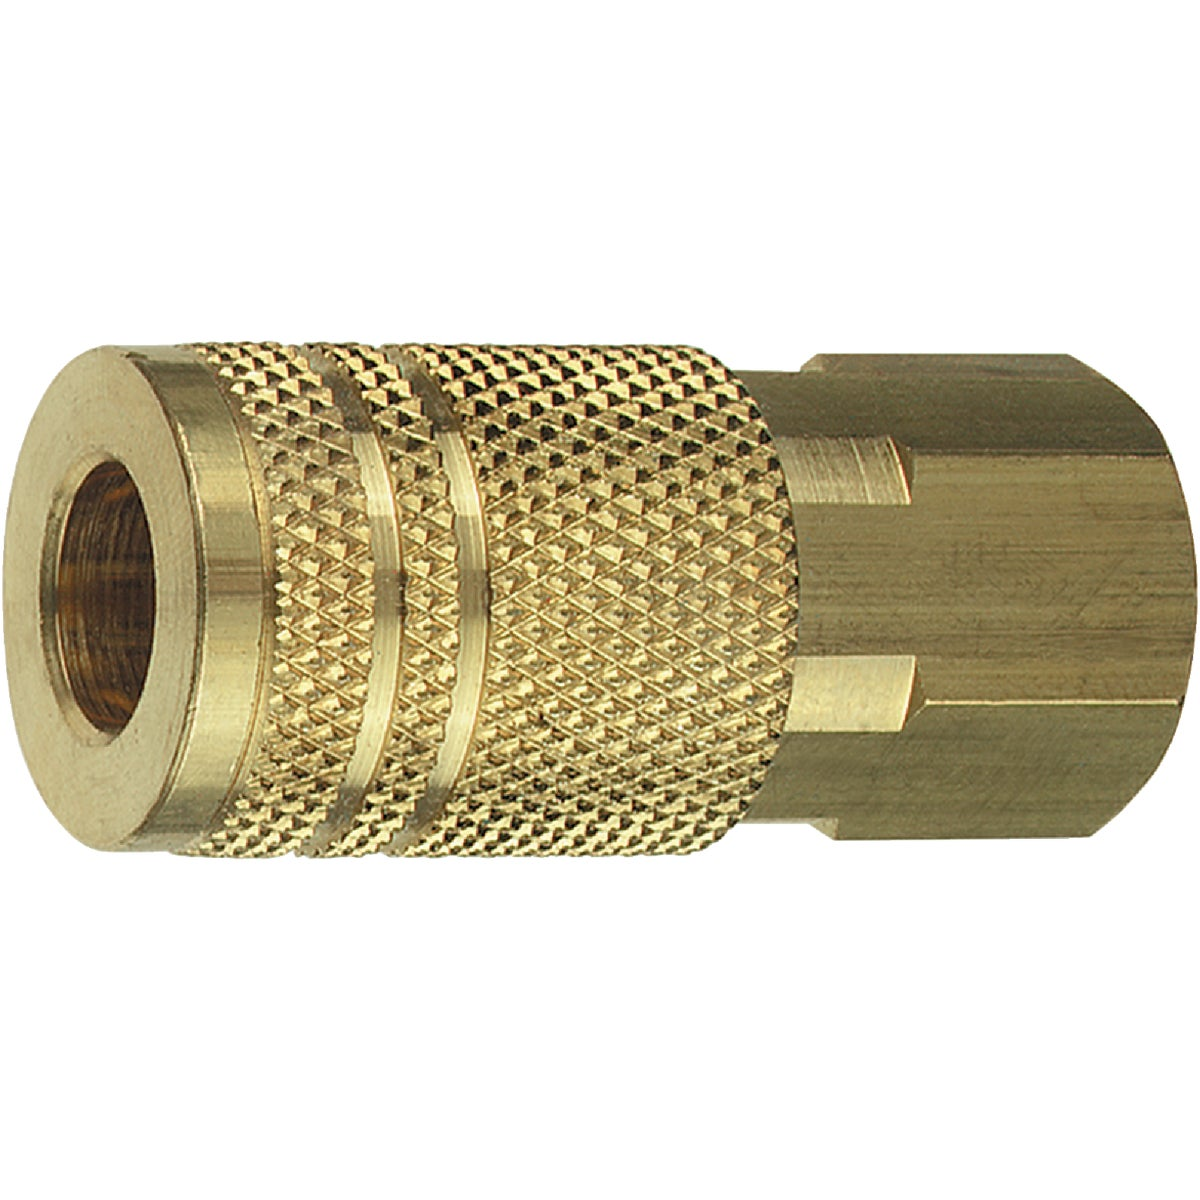 "1/4"" I/M FEMALE COUPLER - 13-234 by Plews  Lubrimatic"